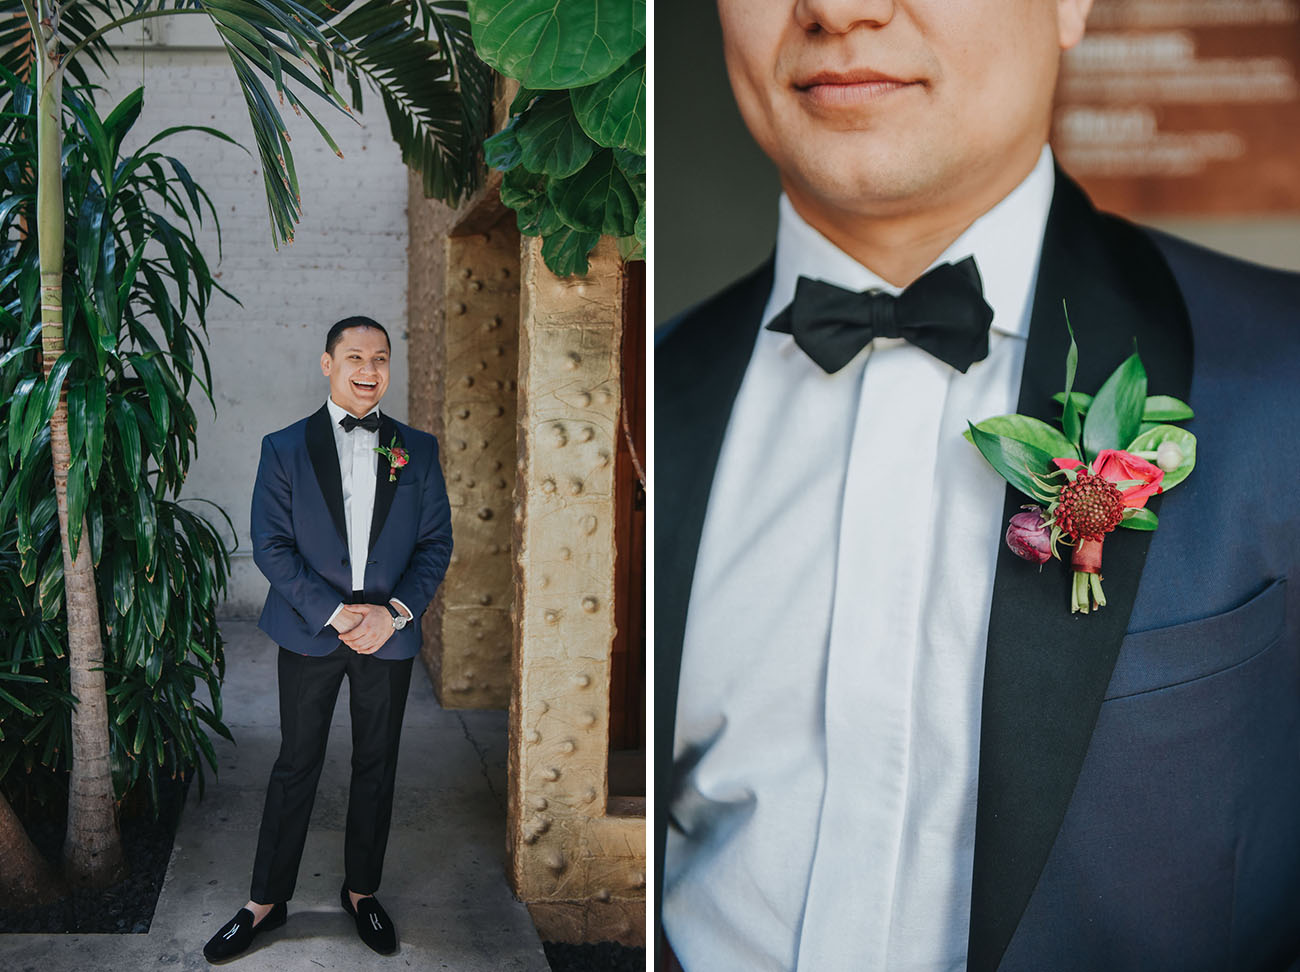 The groom was wearing a tuxedo with a navy jacket and black pants and moccasins